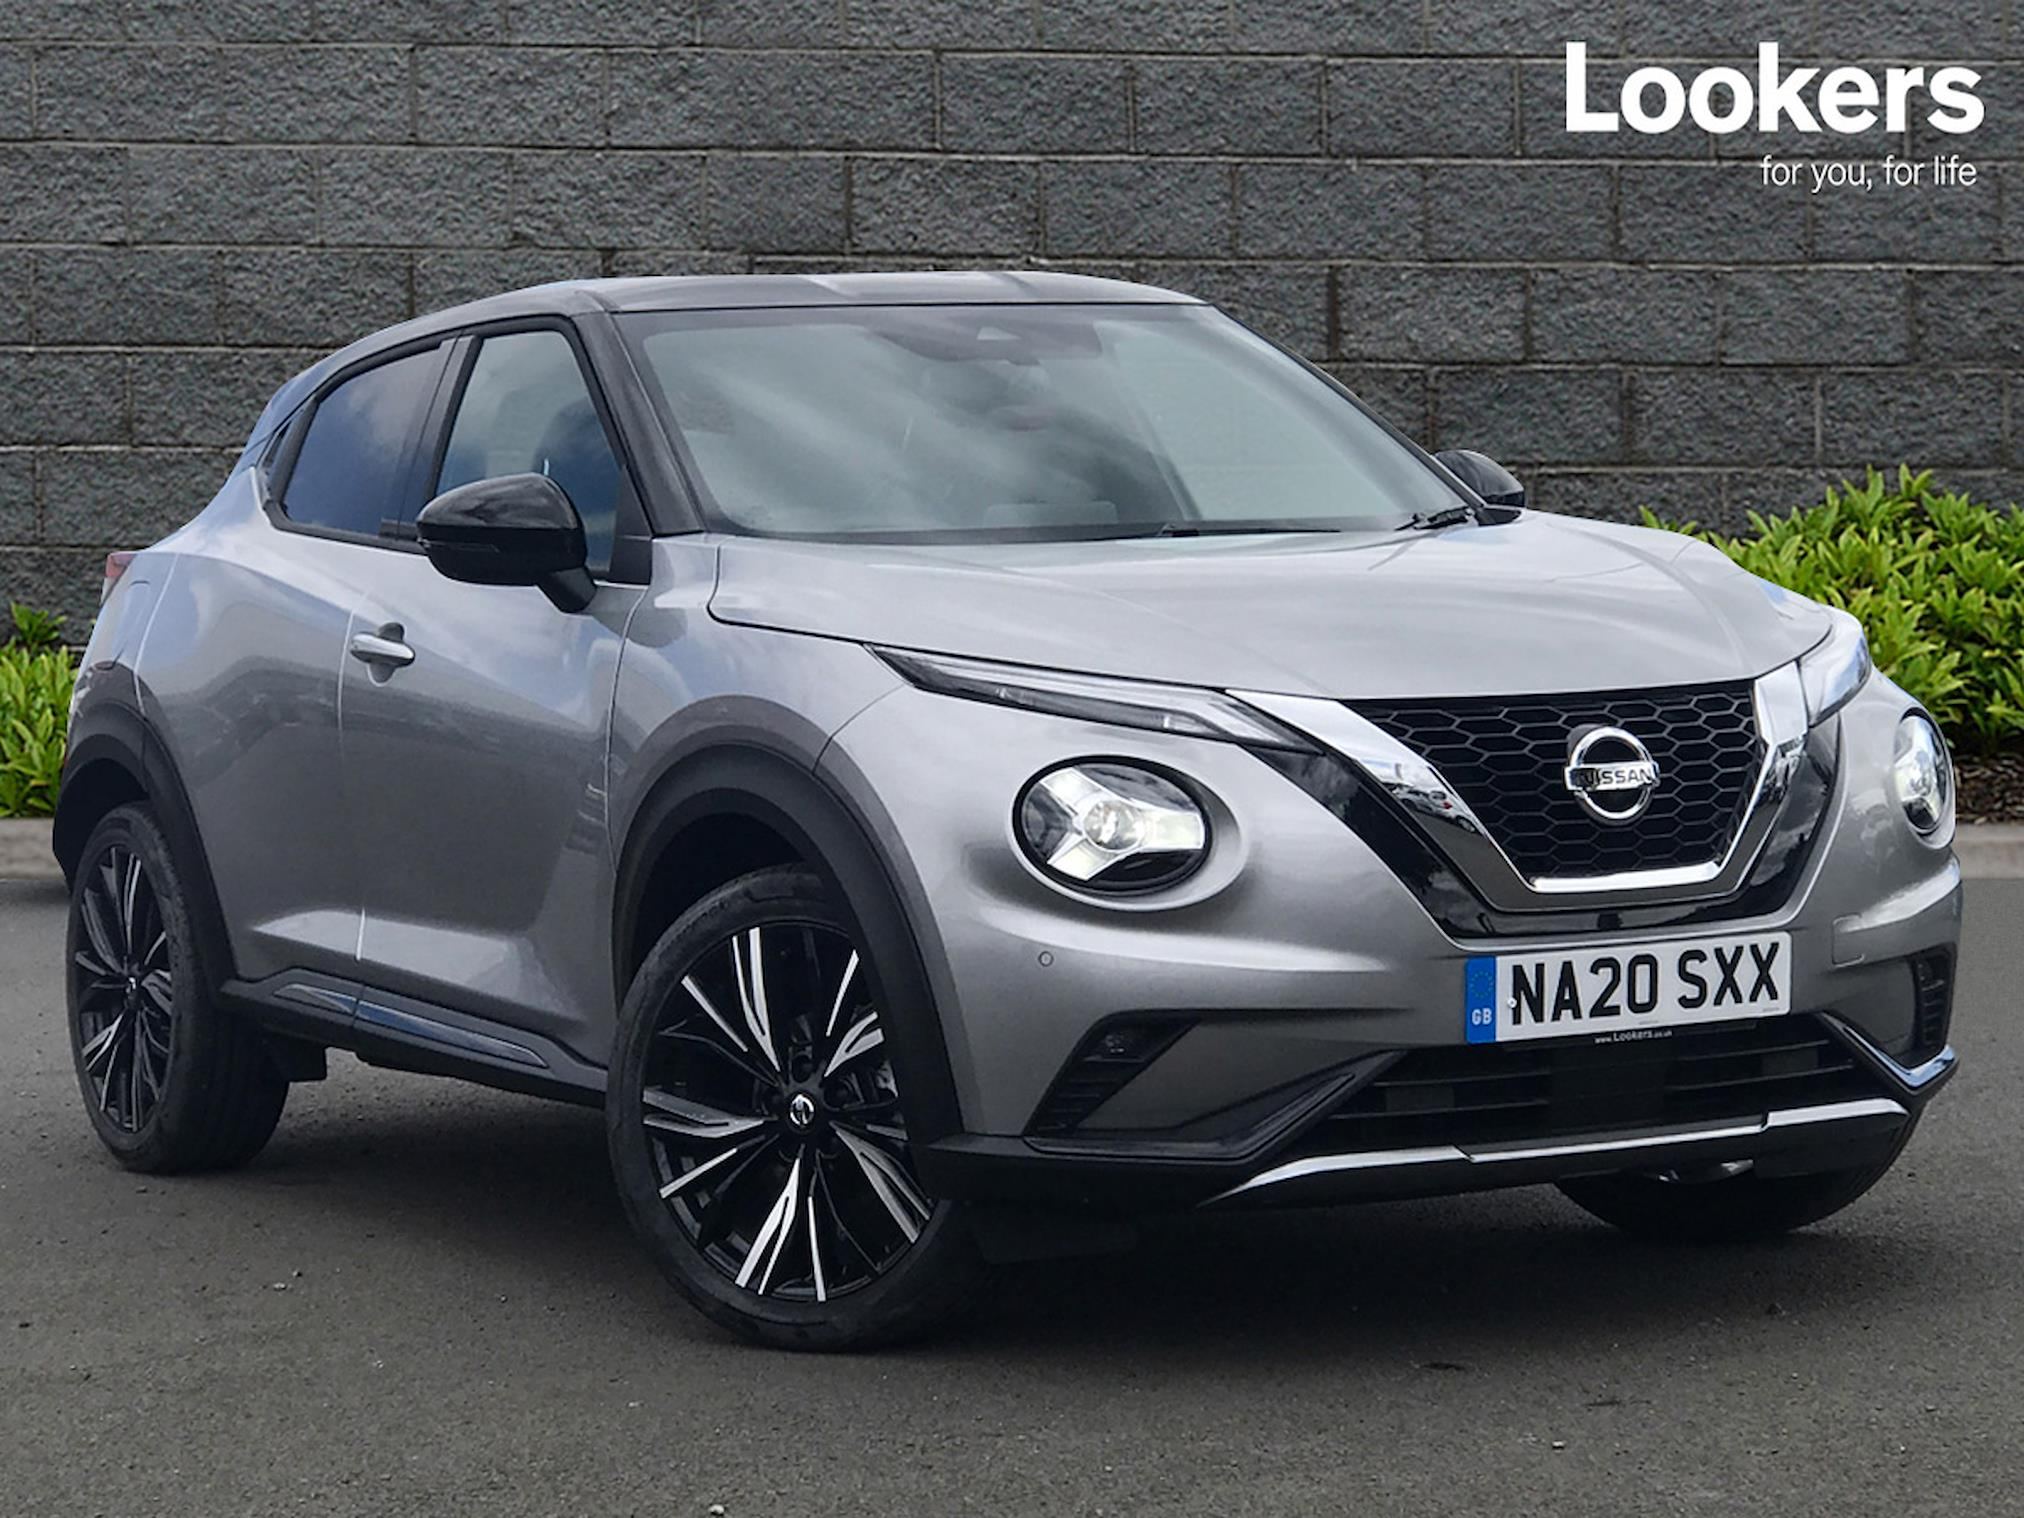 Nearly New Juke Nissan 1 0 Dig T Tekna 5dr 2020 Lookers